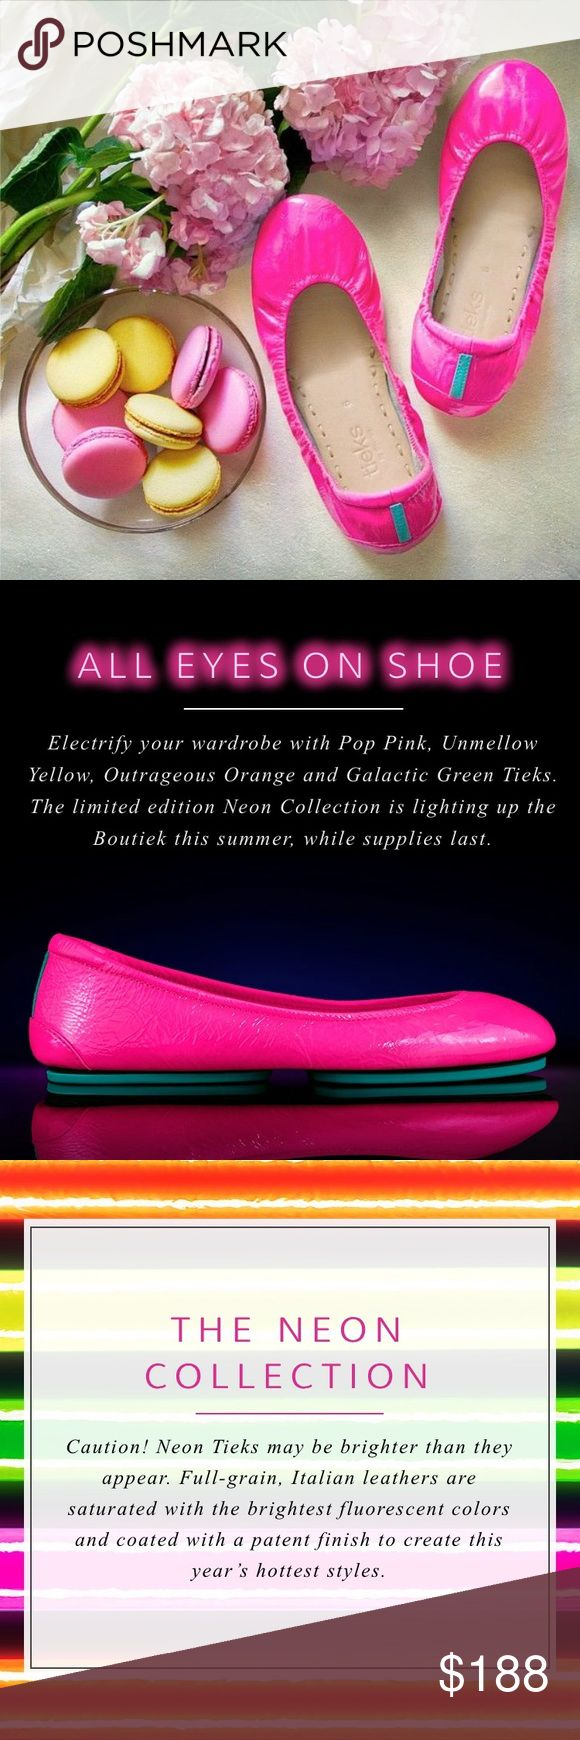 Neon Pop Pink Tieks Like new, worn once for a couple of hours! Just too bright for an introvert like myself. 🙈 No trades. No outside sales! PRICE IS FIRM, ALREADY AT A LOSS DUE TO FEES! Tieks Shoes Flats & Loafers